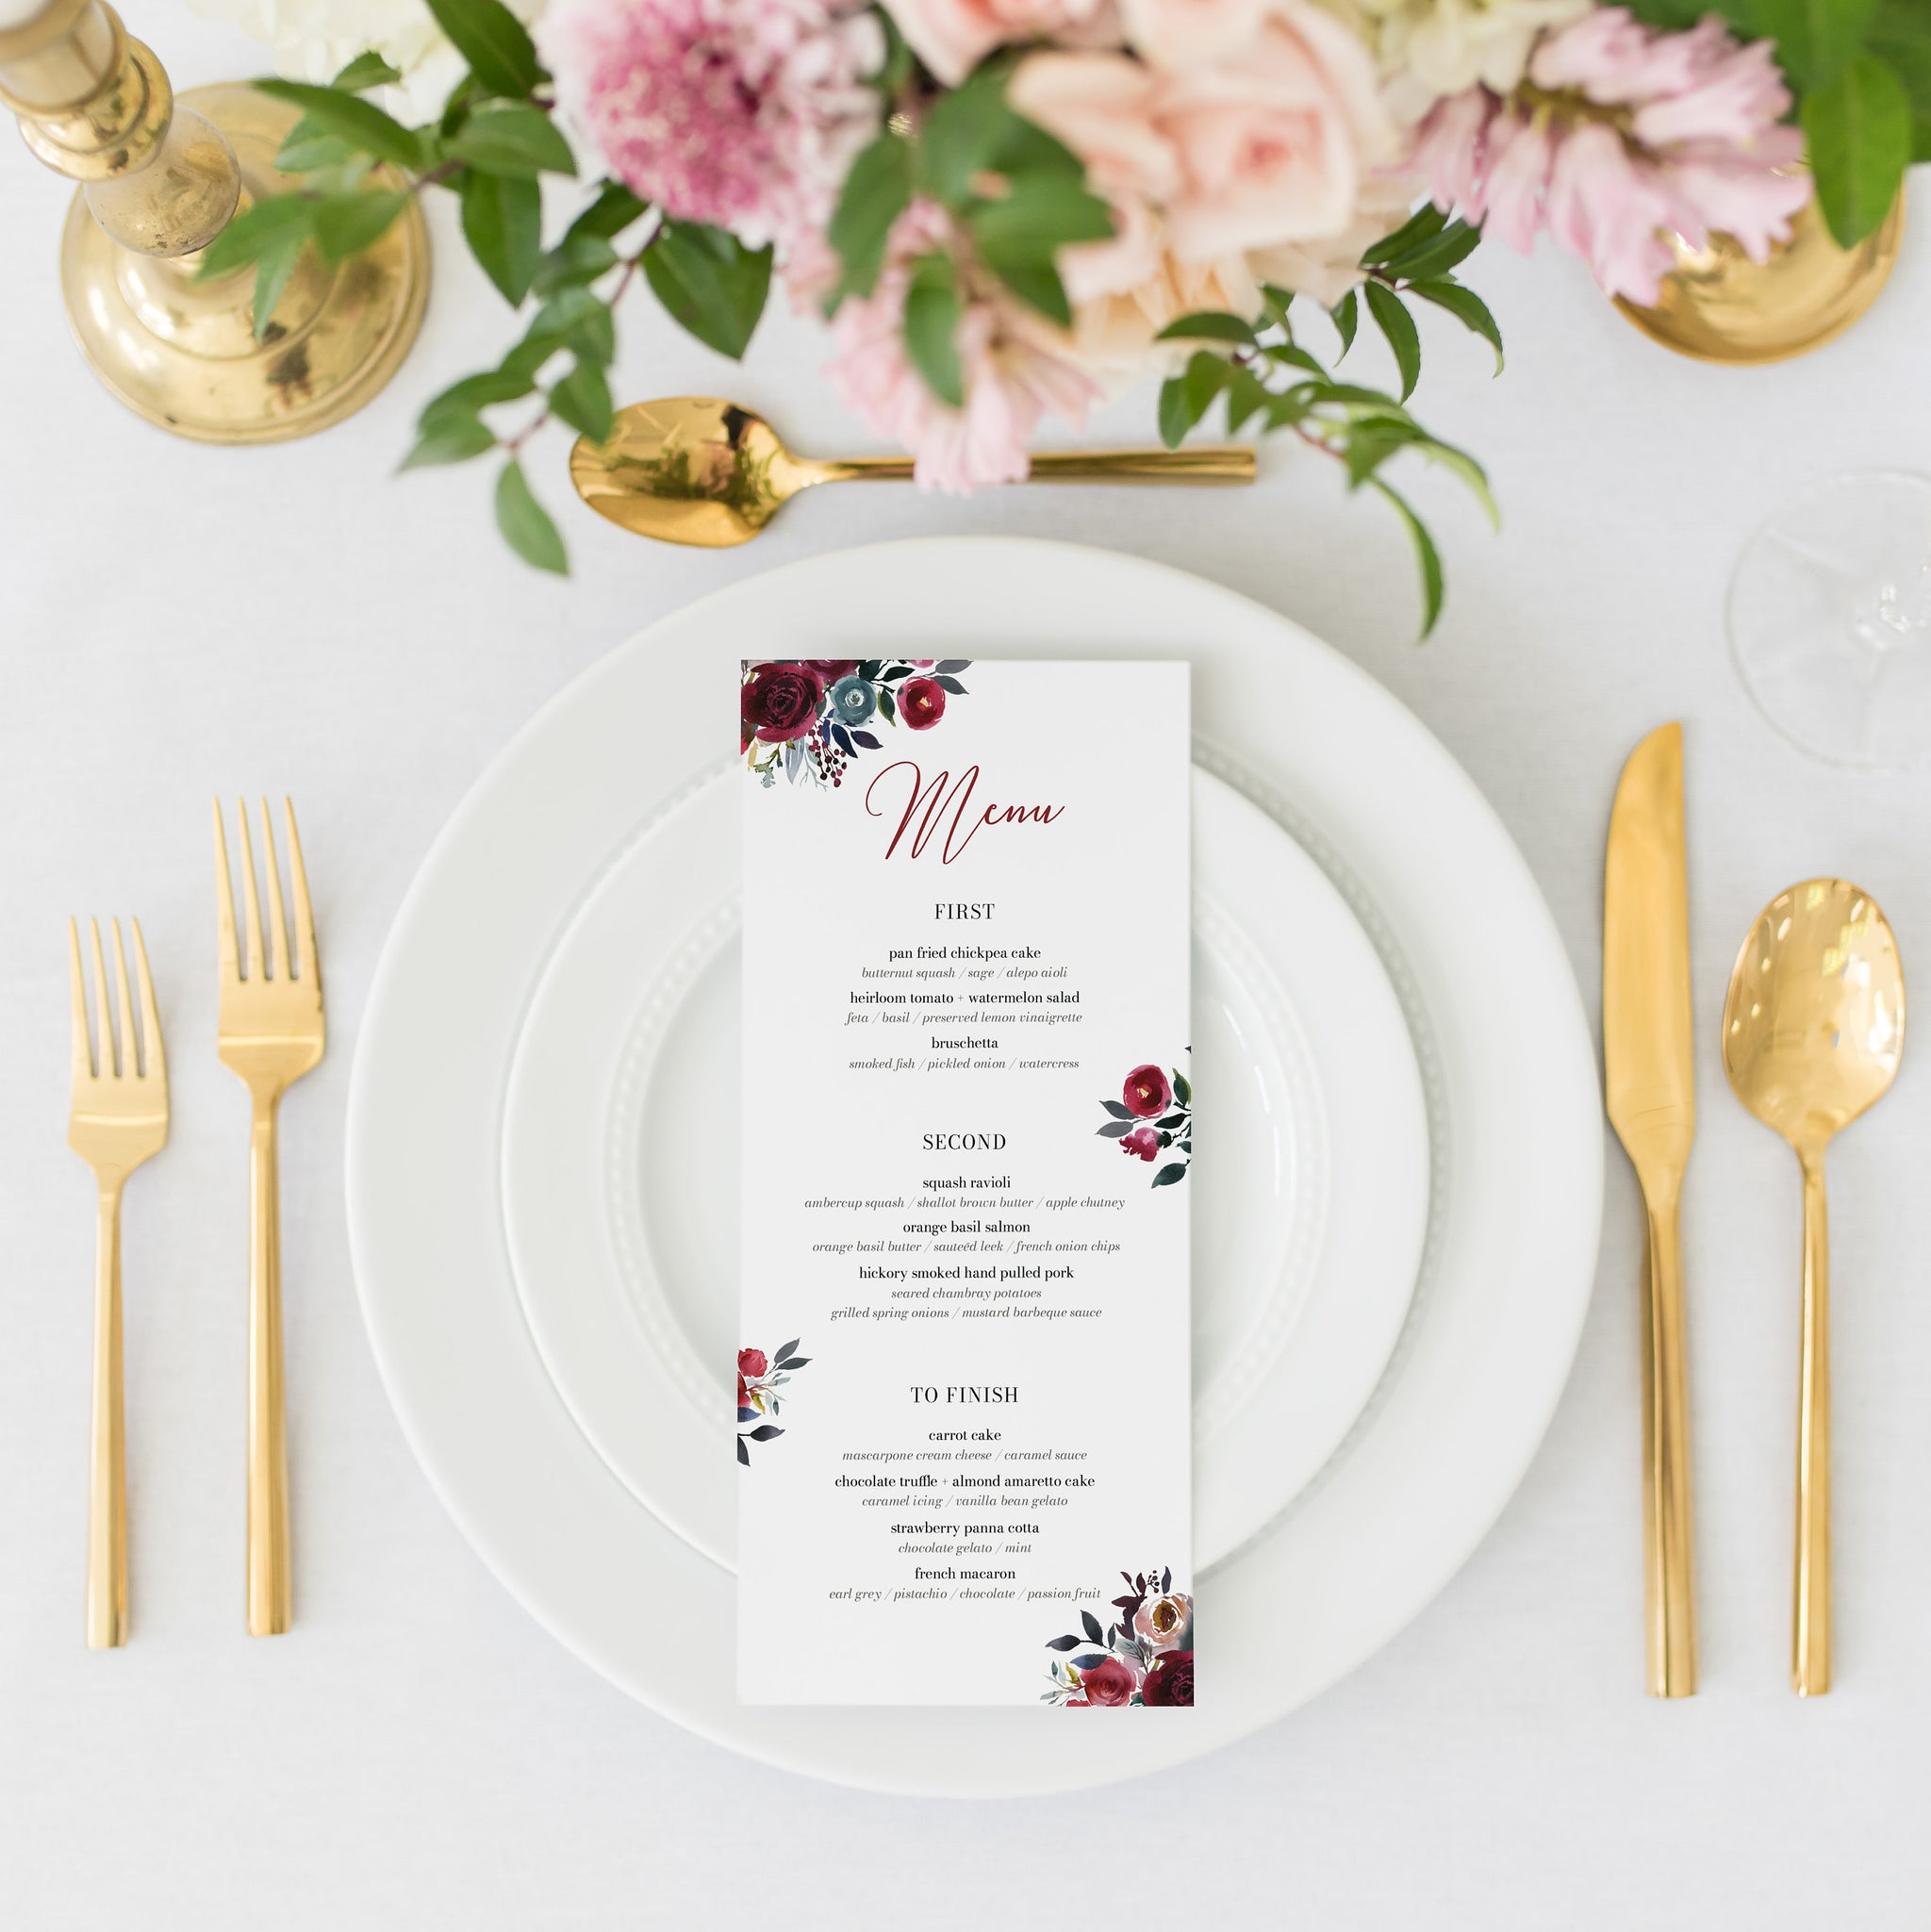 Burgundy and Navy Wedding Menu Template Download, Winter Wedding Menu Editable Download, Printable Menu 4x9 & 5x7 - BB100 - @PlumPolkaDot